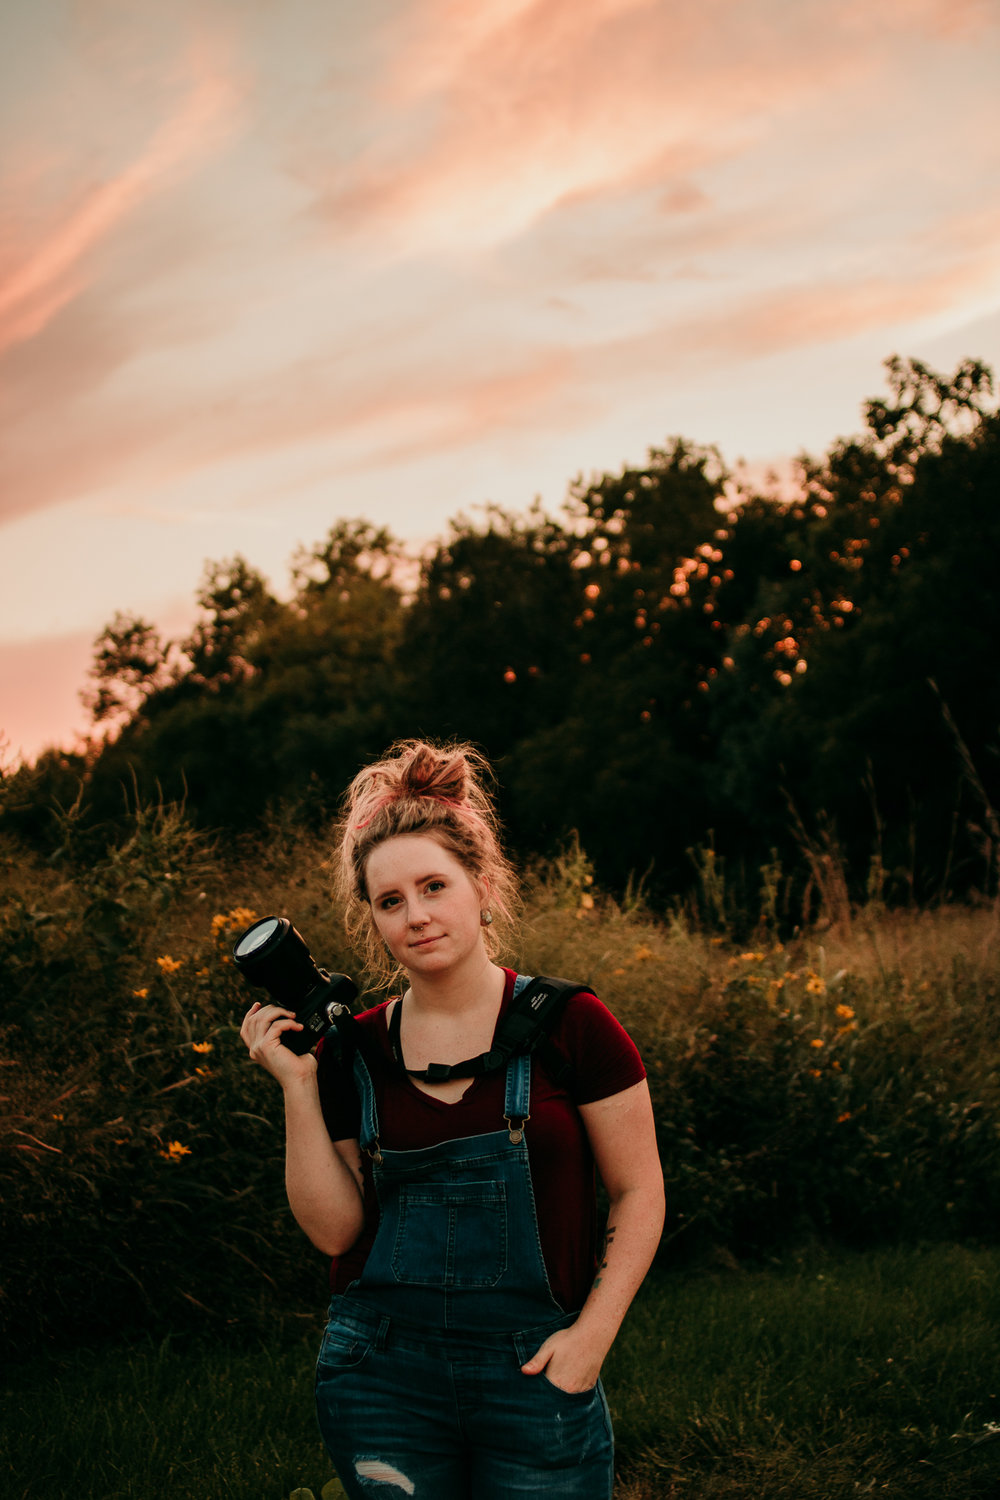 Hey There! - I'm Lexy, the owner/photographer! Click HERE to read more about yours truly, click HERE to contact me!I have a passion for in between moments. Loving glances, baby giggles and dancing like no one is watching.